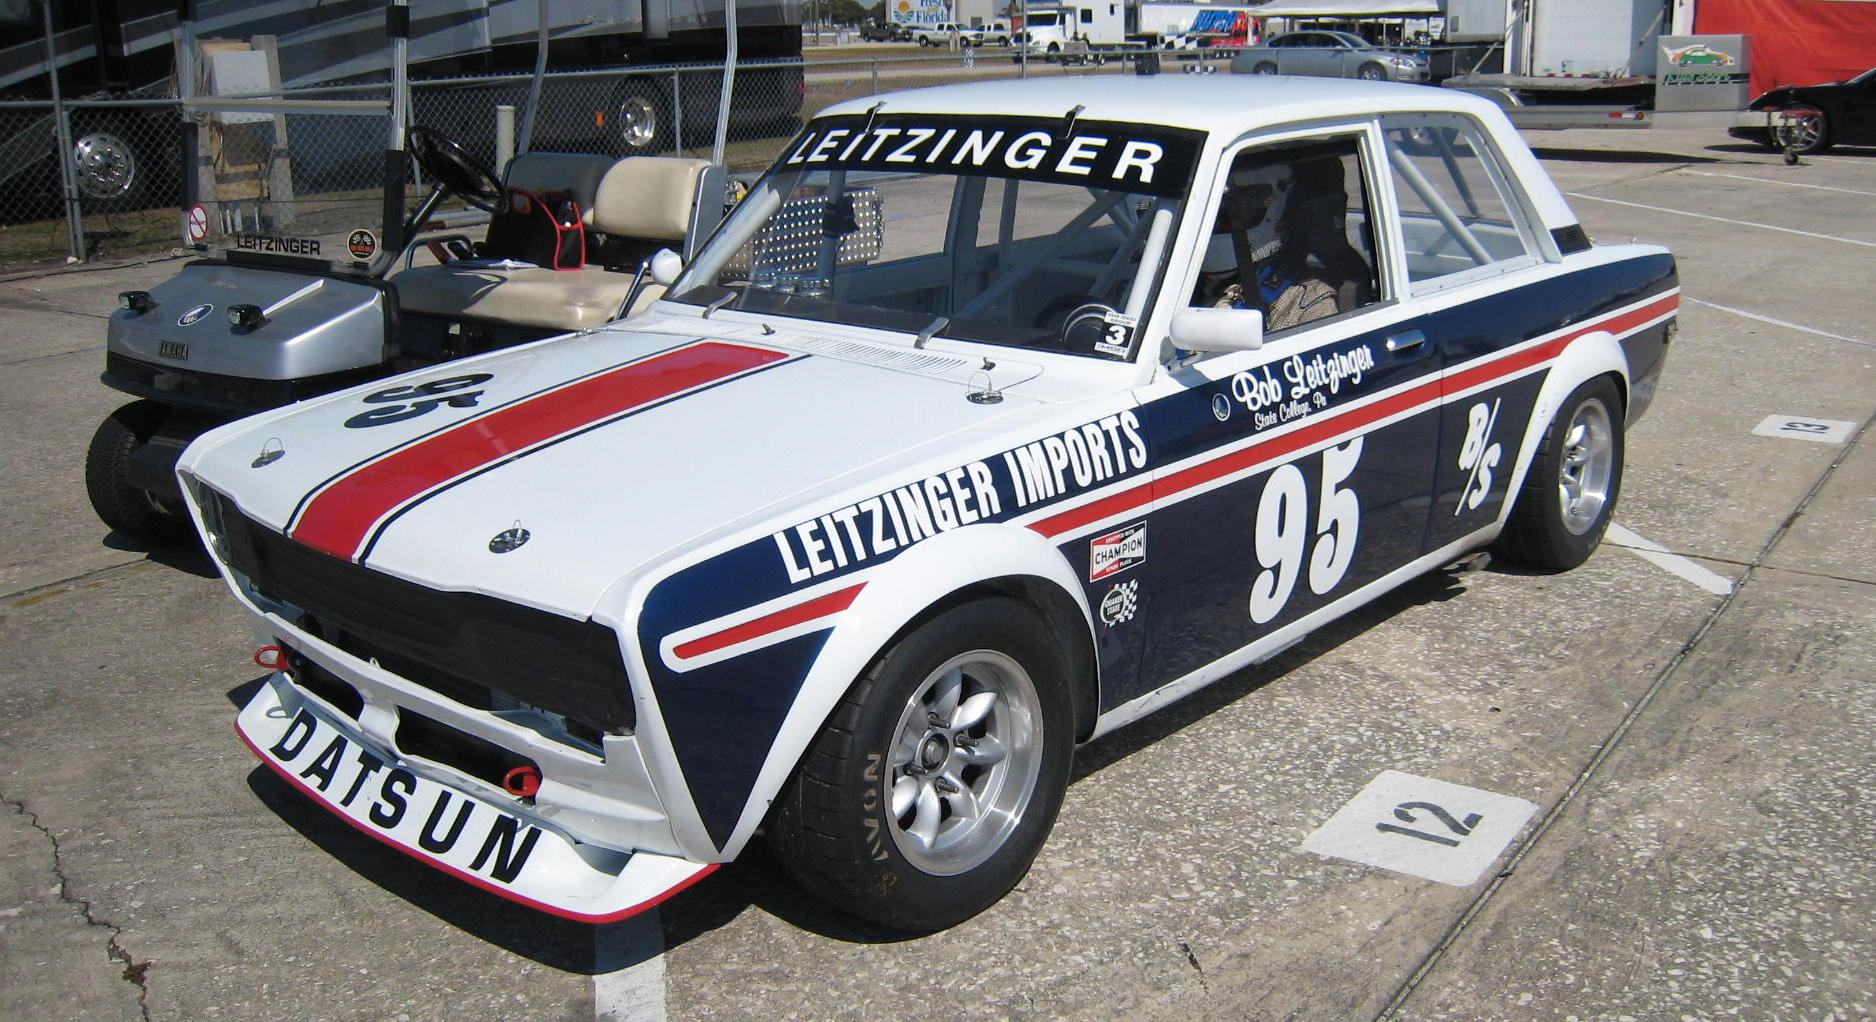 Datsun Race Car For Image Gallery Hcpr